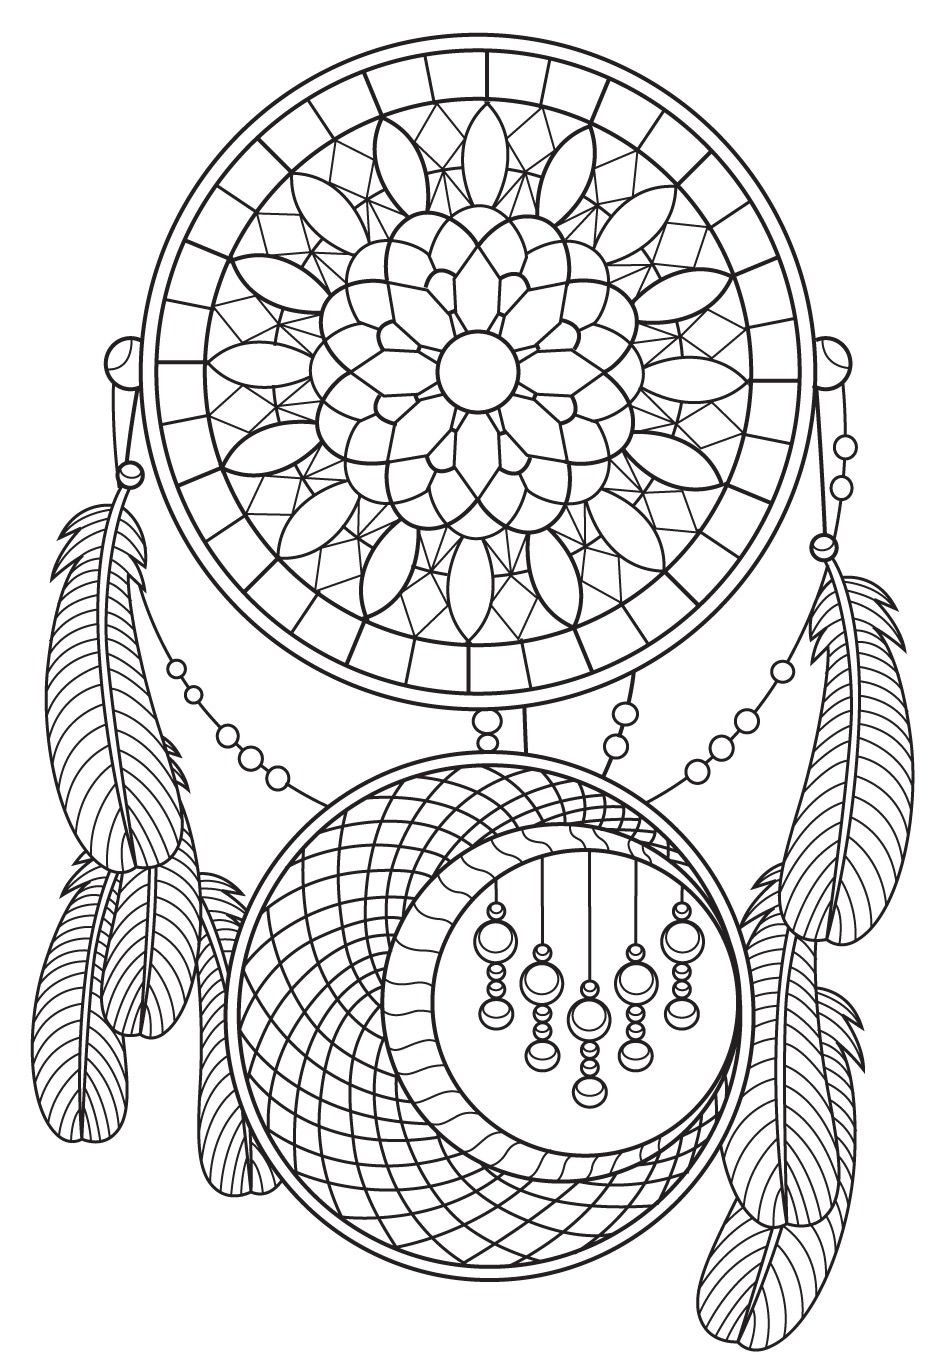 Dreamcatcher Coloring Page Colorish App Free Coloring App For Adults By Goodsofttec Dream Catcher Coloring Pages Love Coloring Pages Mandala Coloring Books